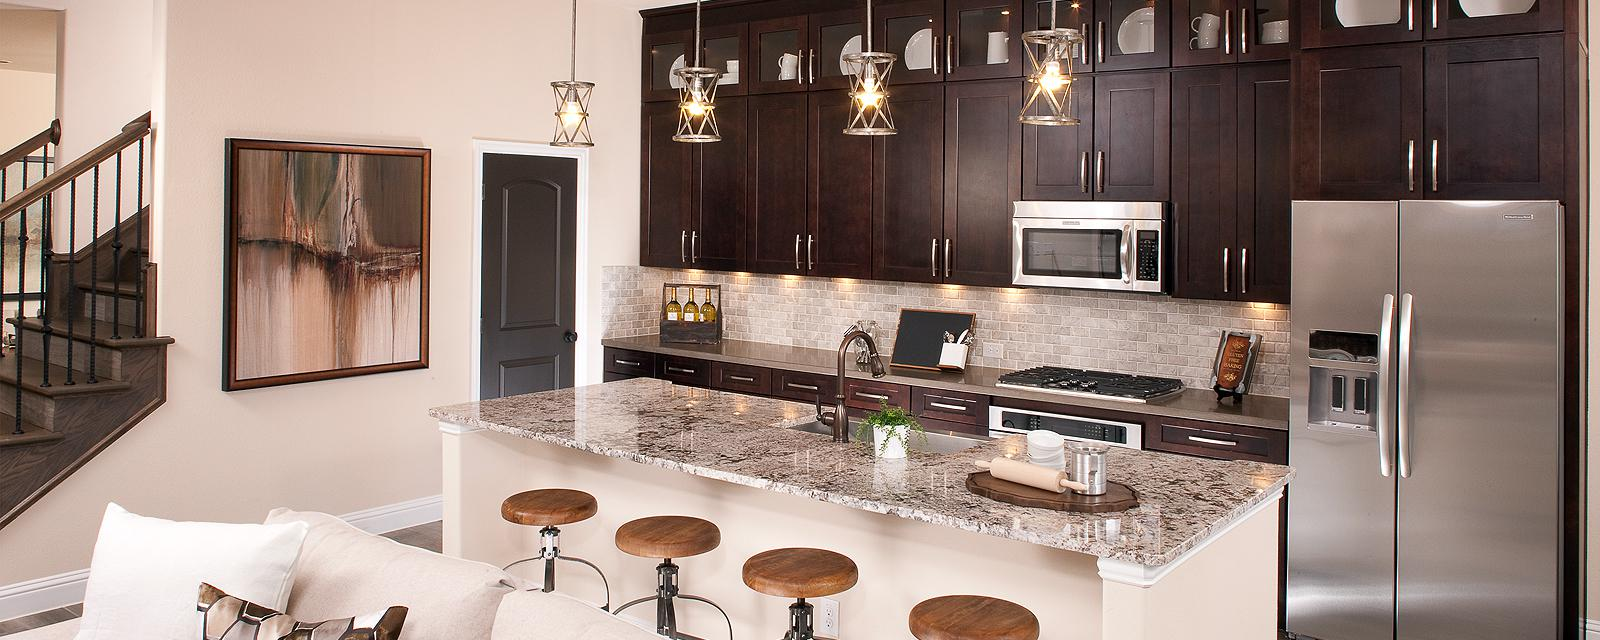 public://division/Dallas/plans/Katy 5288-CJKL/hero/Katy_Kitchen.jpg